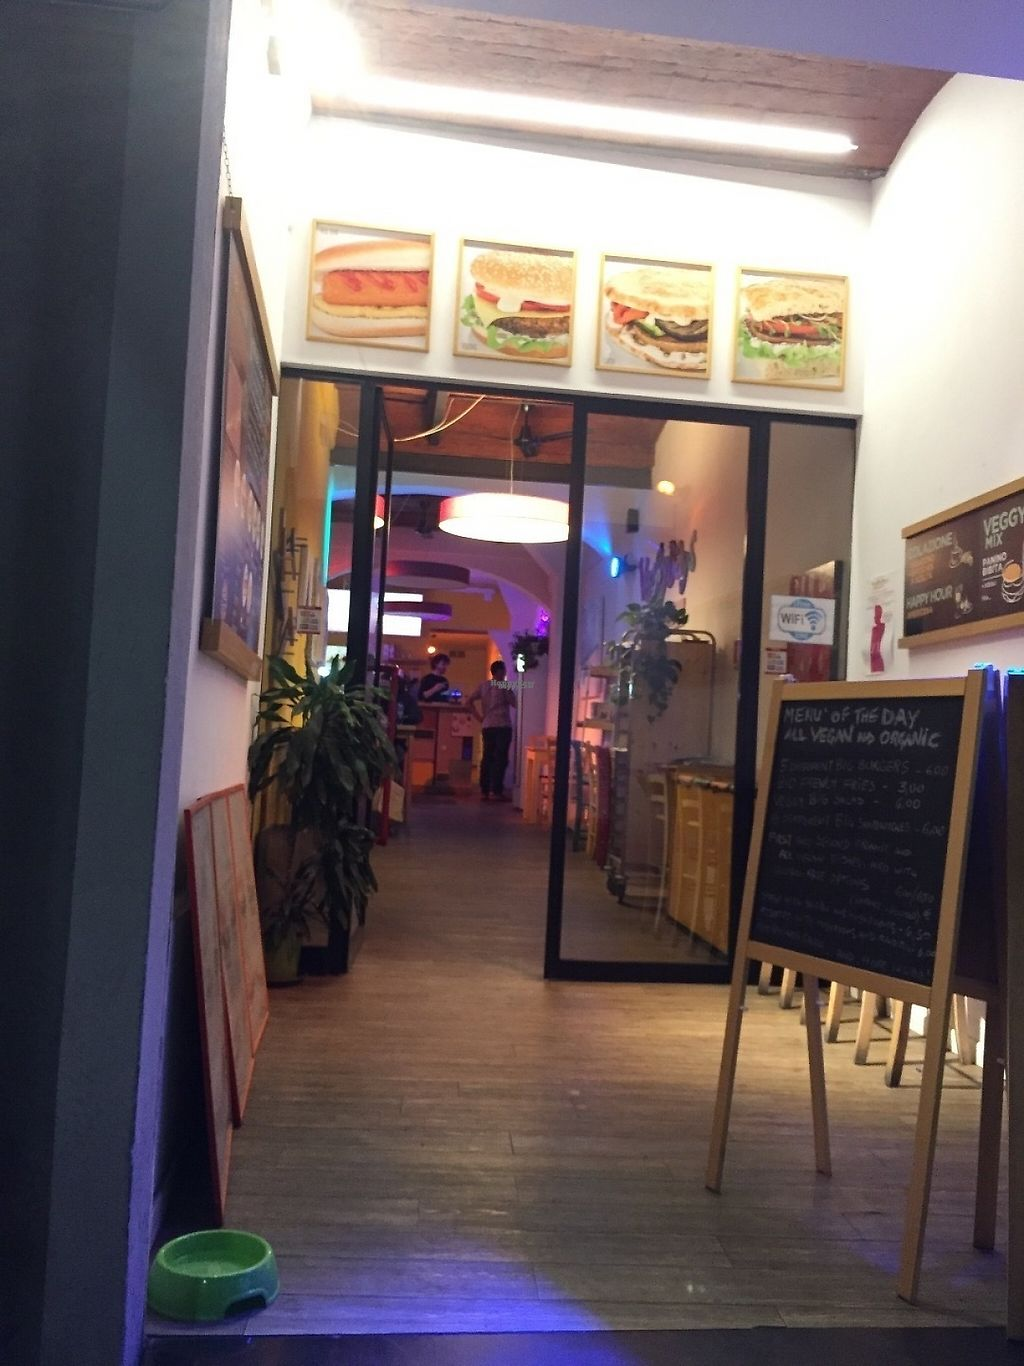 """Photo of Il Vegano - Firenze  by <a href=""""/members/profile/VeganEater2"""">VeganEater2</a> <br/>good food, open through the day, pleasant staff <br/> November 25, 2016  - <a href='/contact/abuse/image/54089/194126'>Report</a>"""